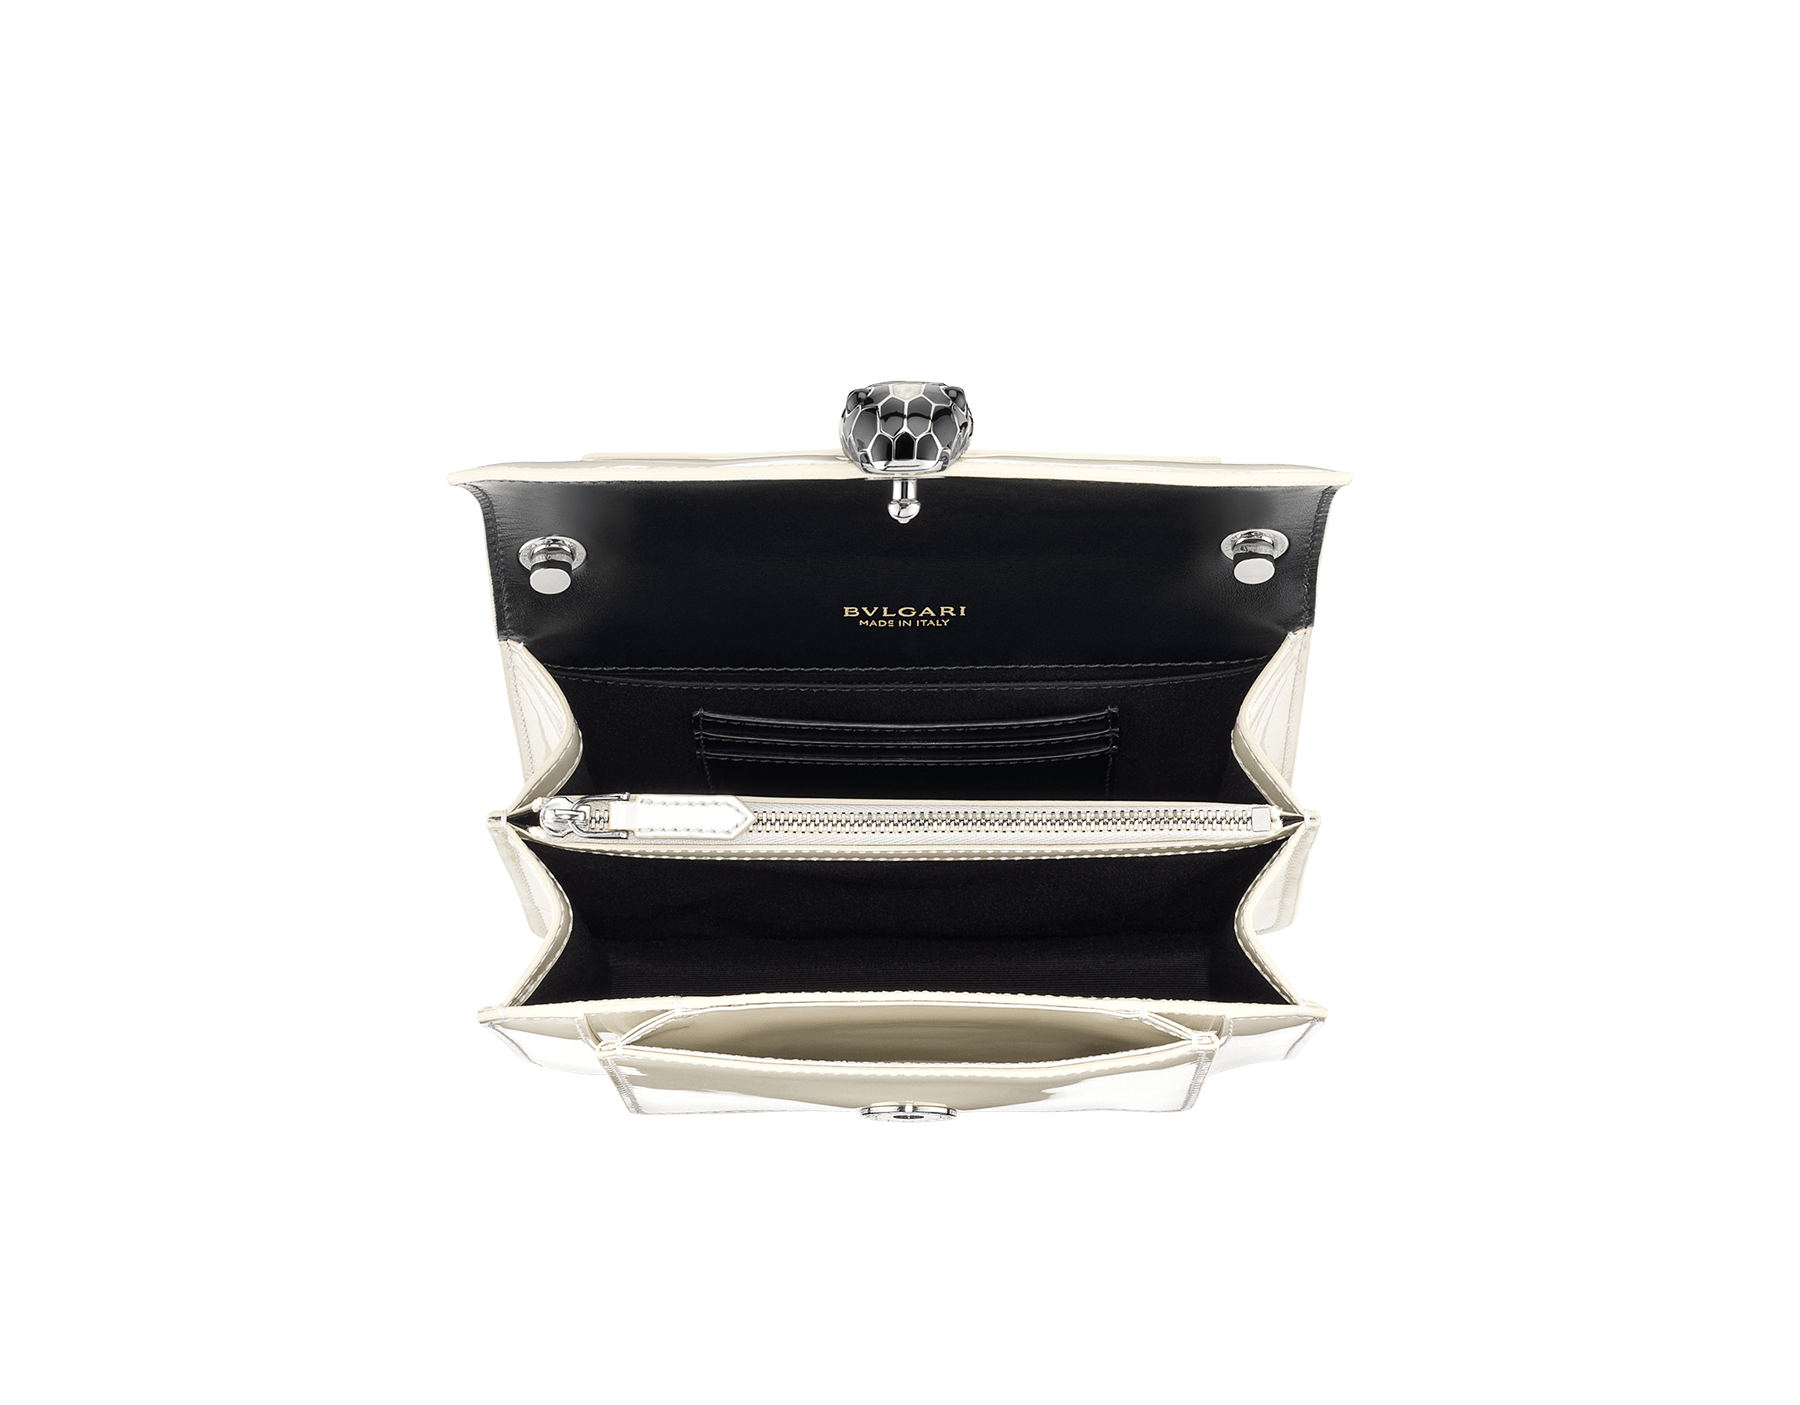 """Serpenti Forever"" crossbody bag in white agate calf leather with a varnished and pearled effect. Iconic snakehead closure in light gold plated brass enriched with black and pearled white agate enamel and black onyx eyes. 289771 image 4"